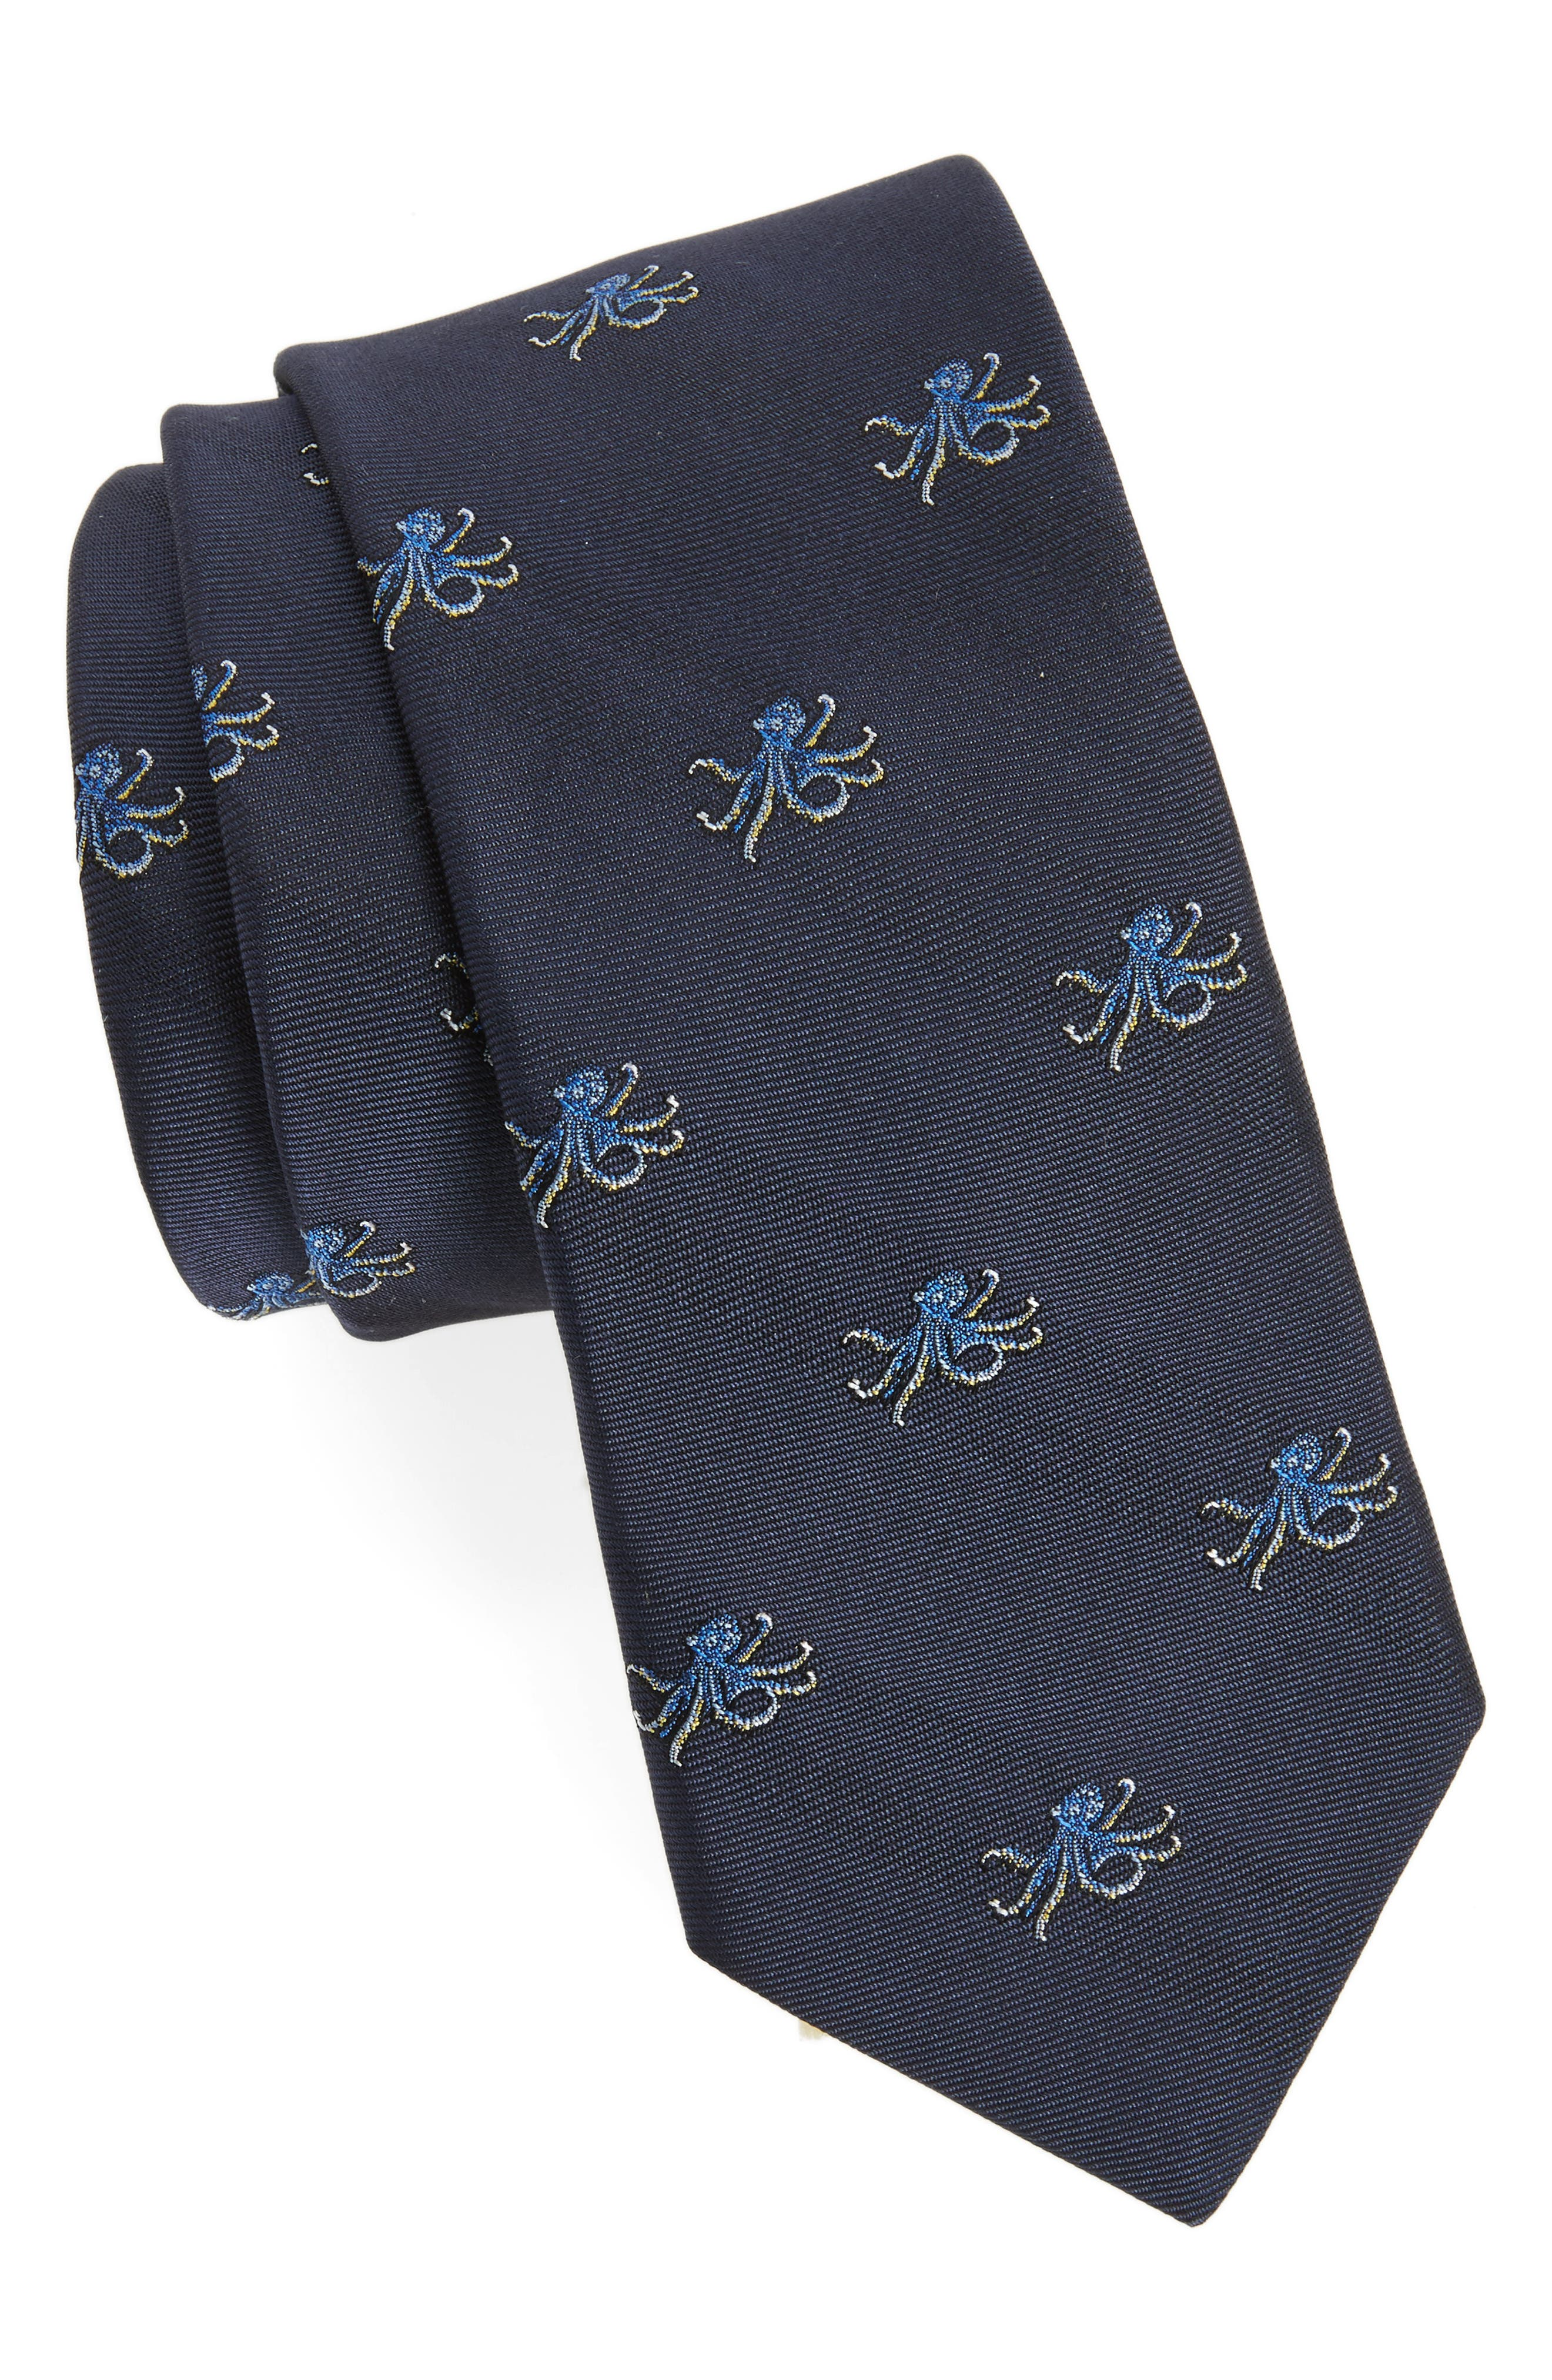 Octopus Silk Tie,                             Main thumbnail 1, color,                             411